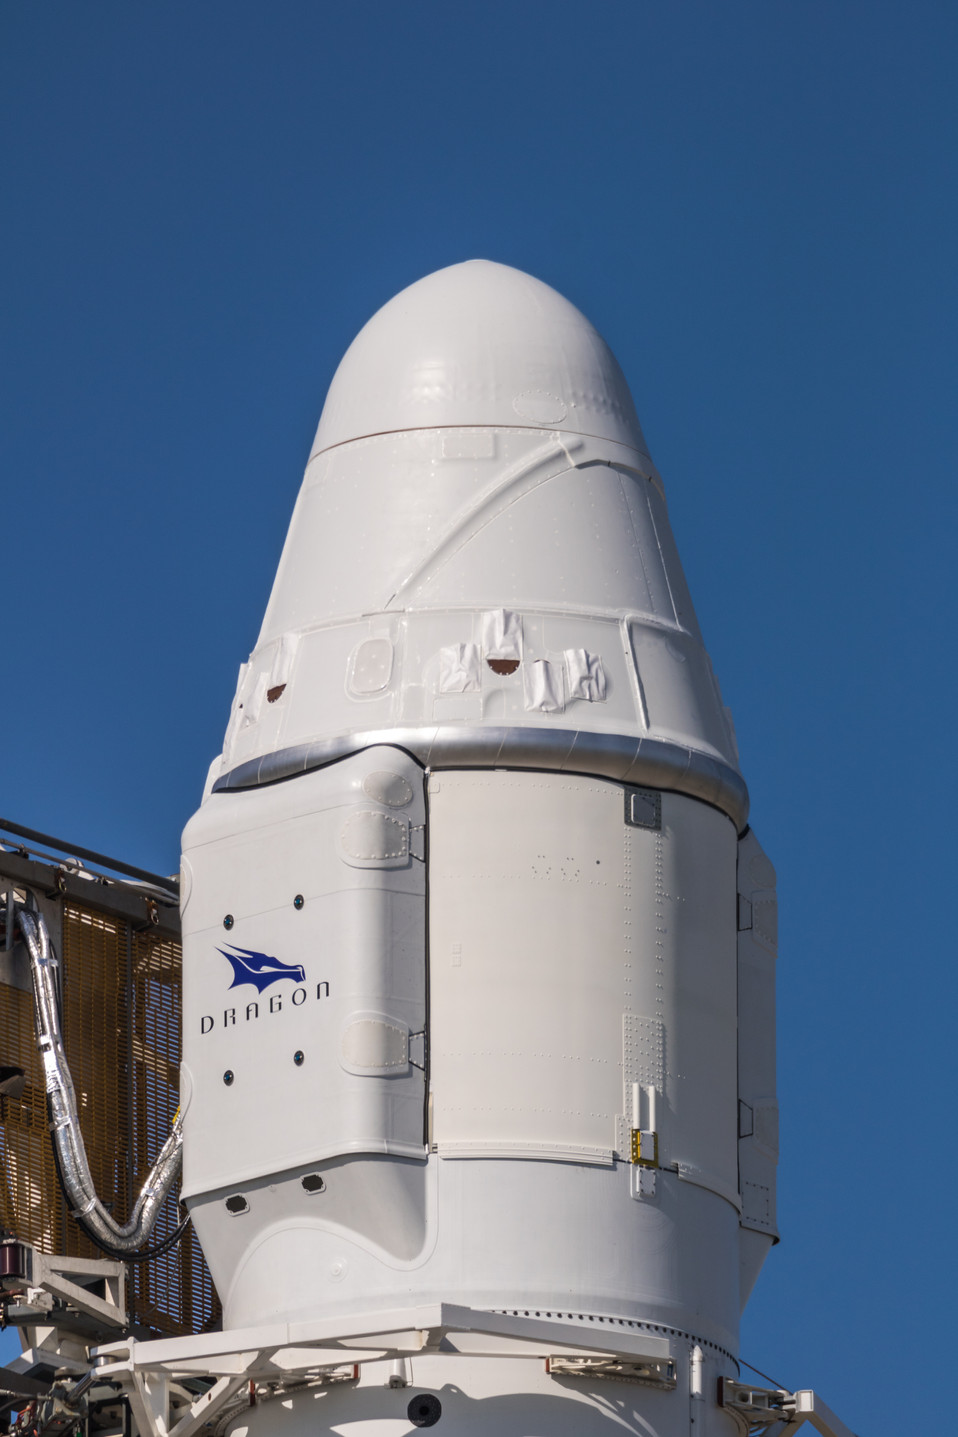 Amidst weather, Dragon is preparing for launch tomorrow morning.